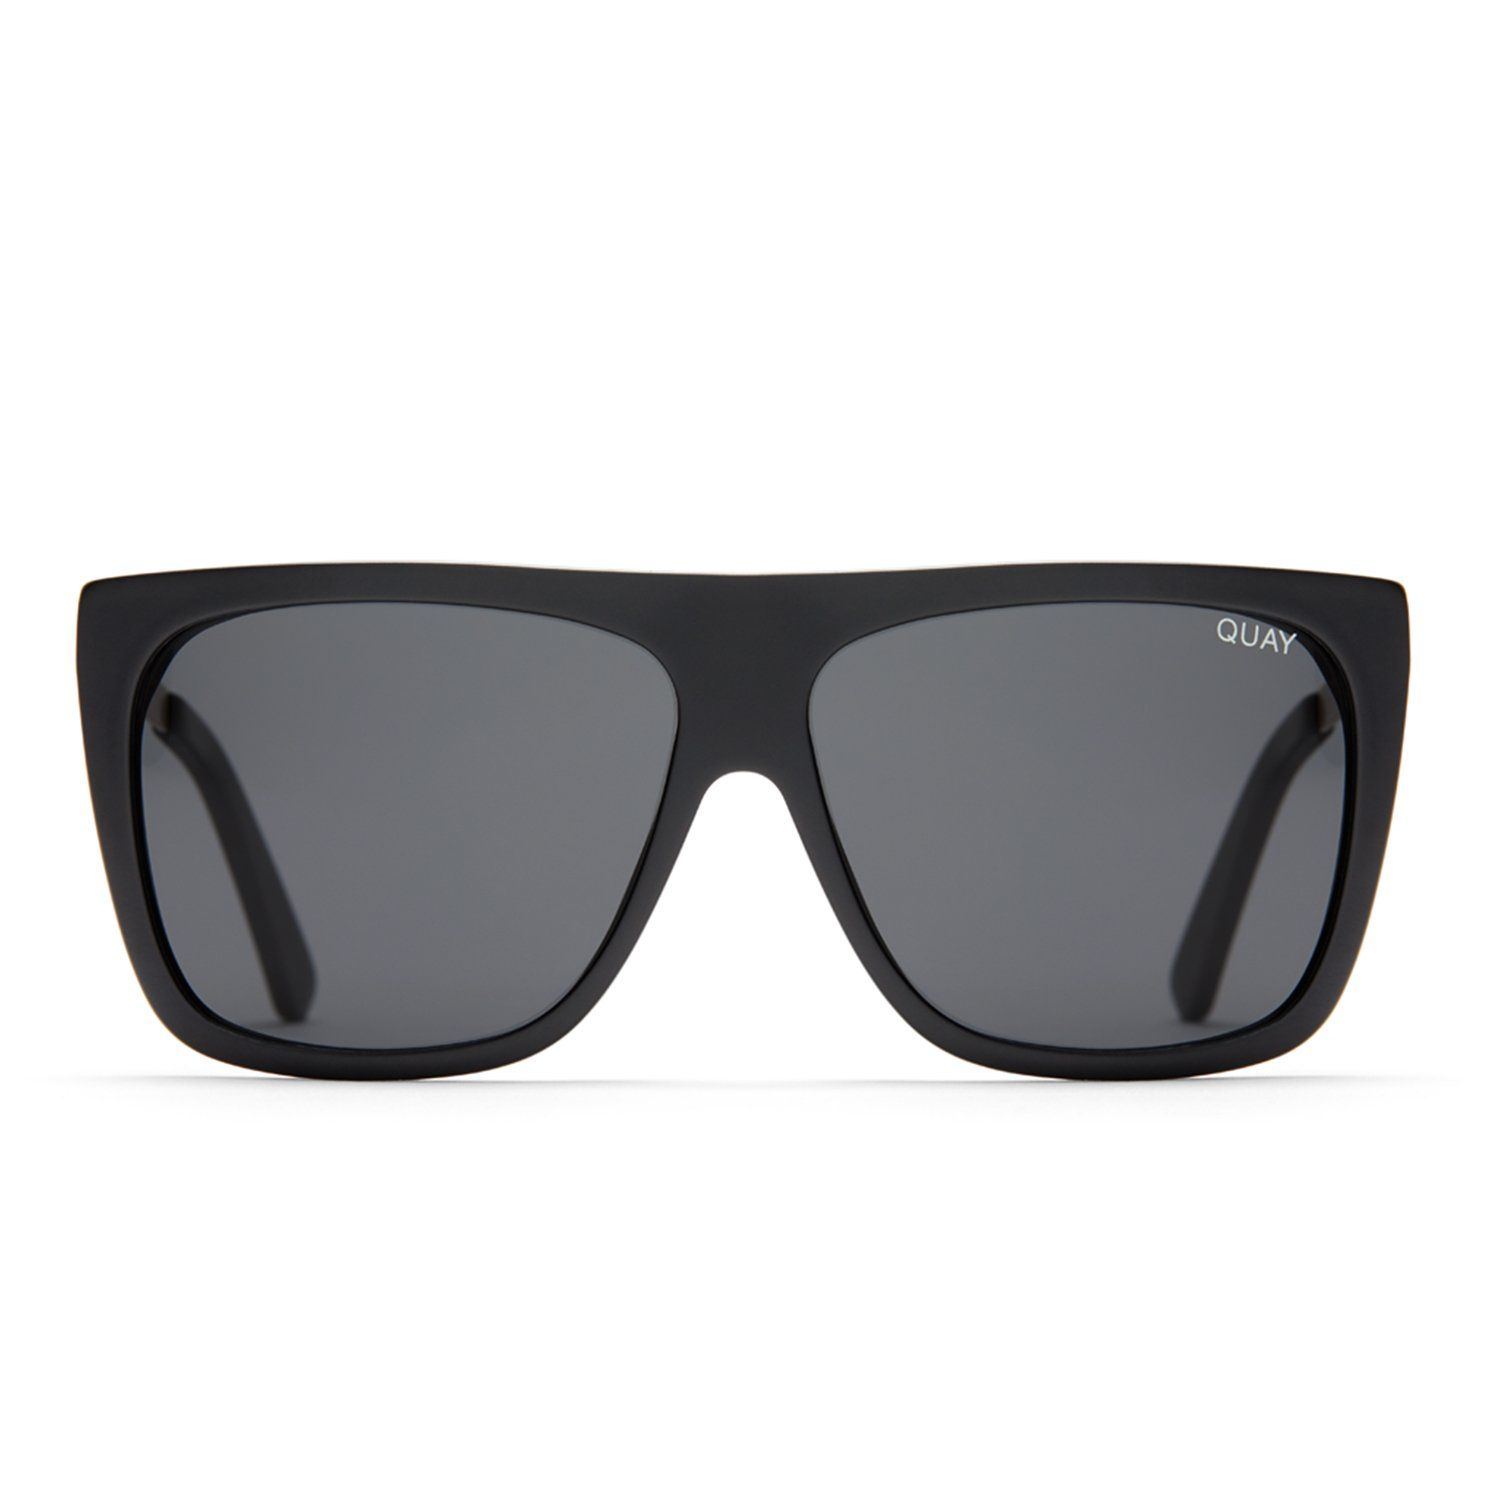 24e22975bd Quay Australia OTL II Womens Sunglasses Oversized Square Sunnies Black Smoke      You can get additional details at the image link.